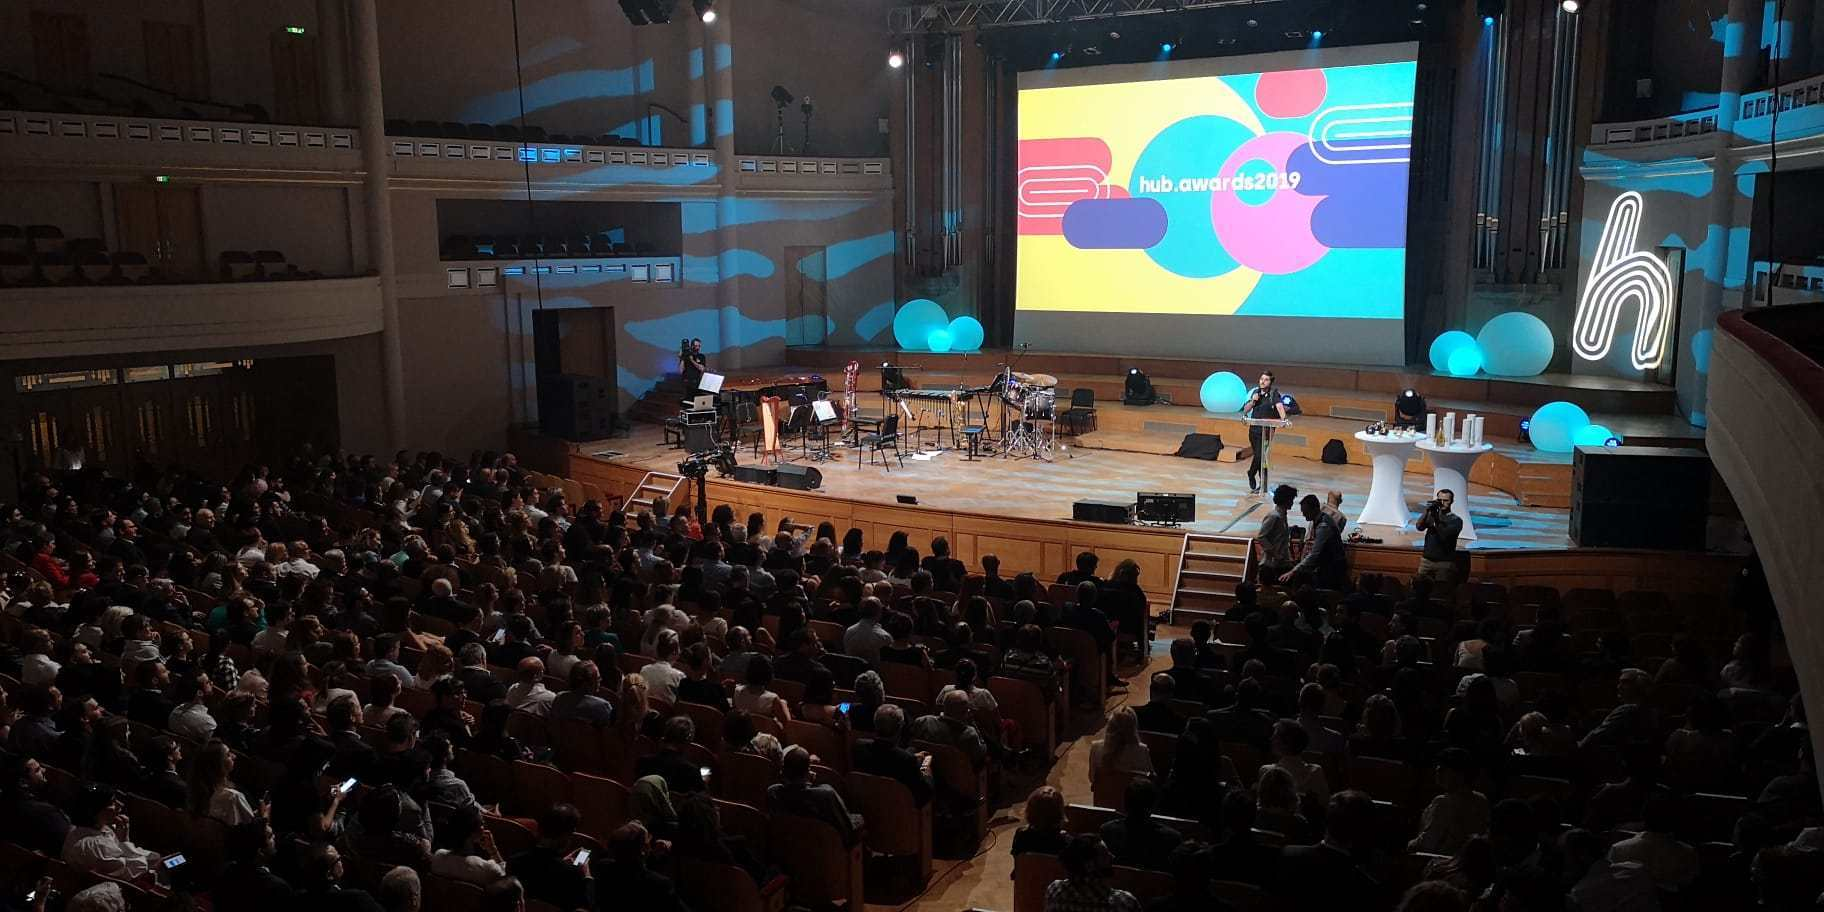 hub.awards2019: full marks